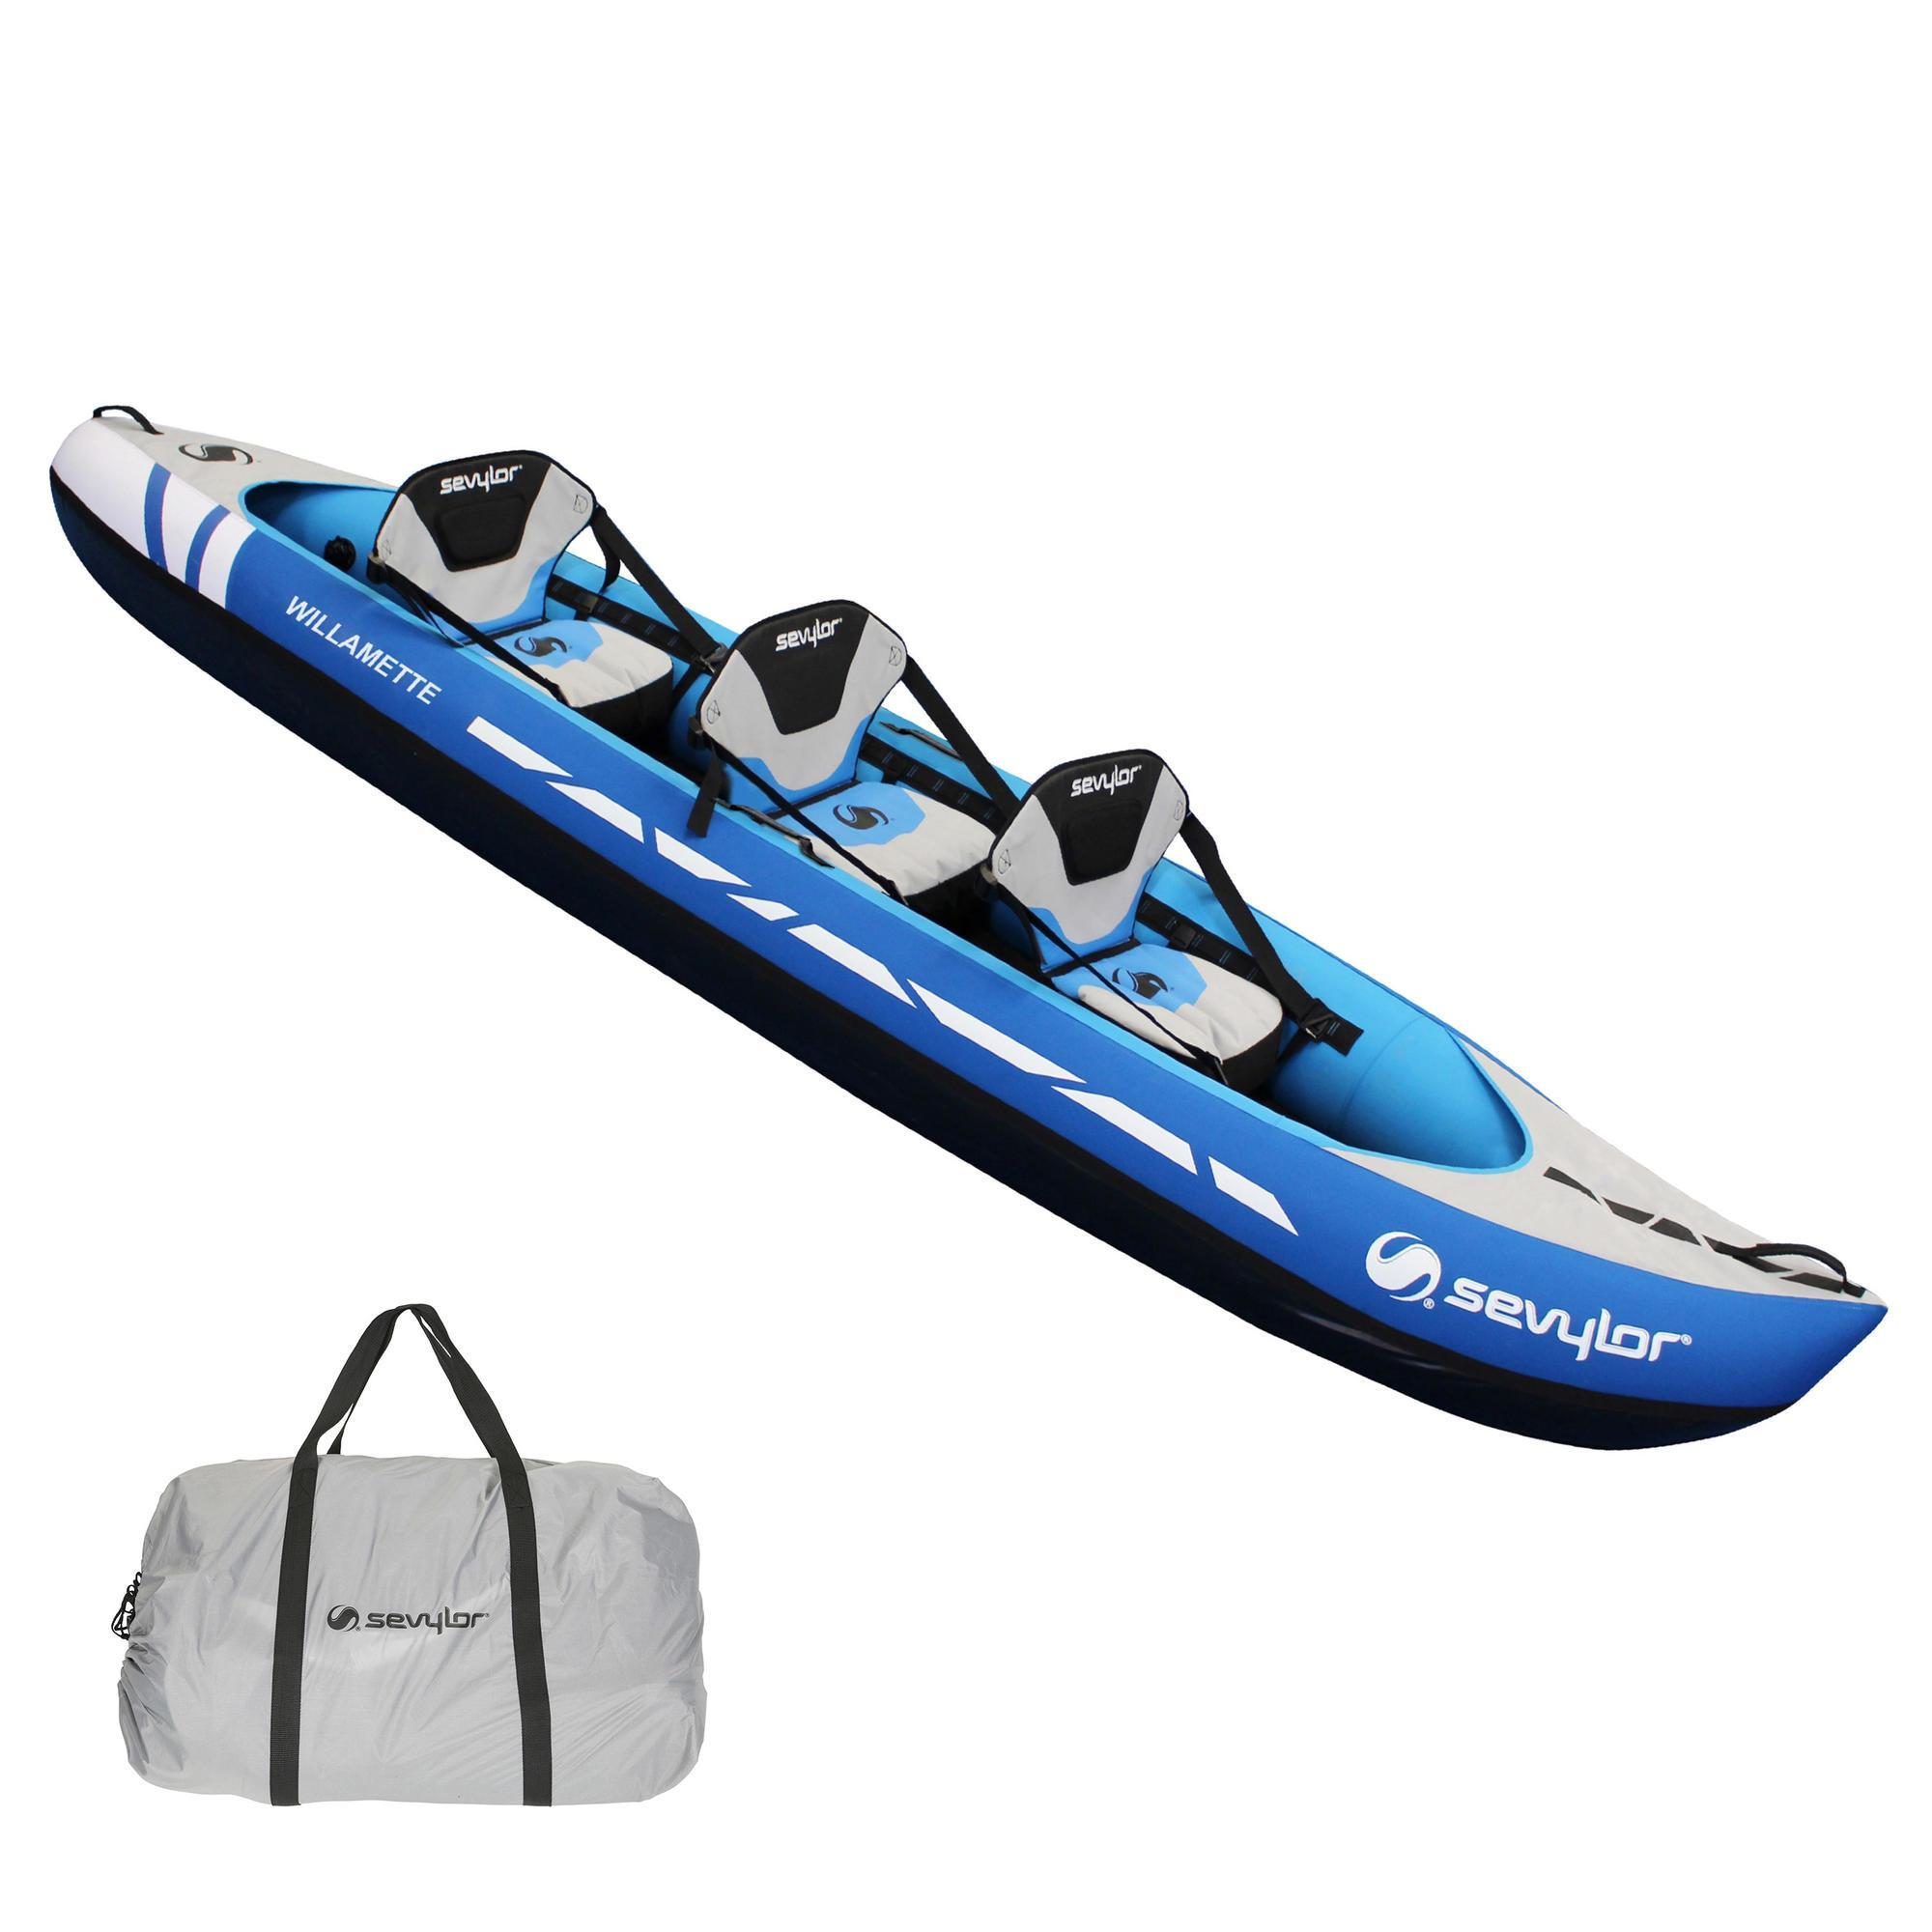 1efb57b4d Kayak Canoa Hinchable De Travesia Sevylor WILLAMETTE 3 Plazas Azul Sevylor